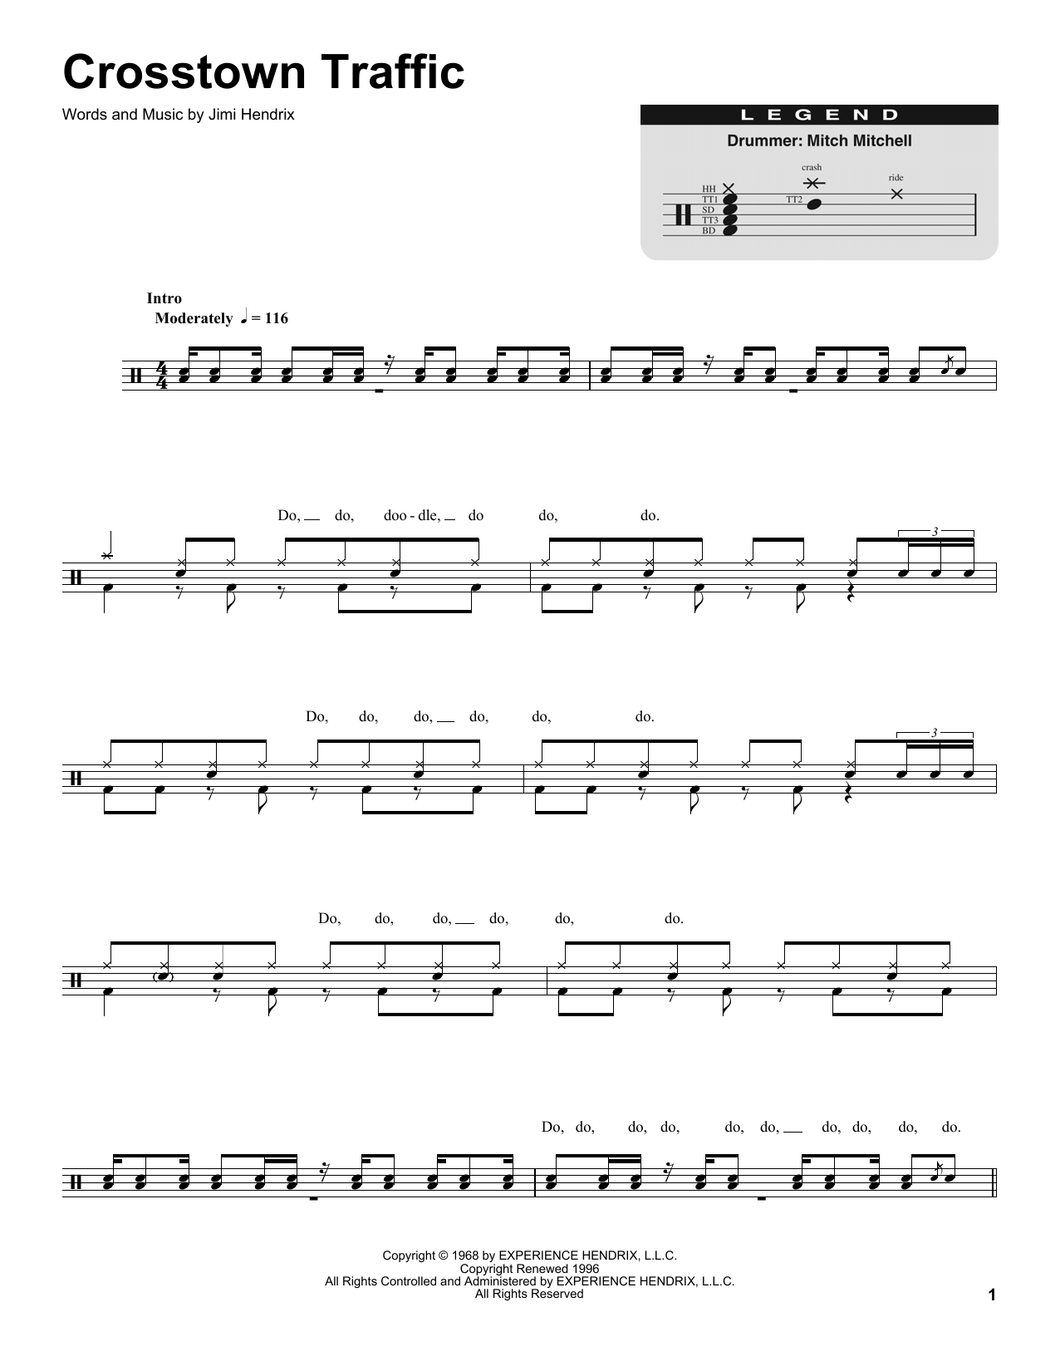 Crosstown Traffic - Jimi Hendrix - Full Drum Transcription / Drum Sheet Music - SheetMusicDirect DT